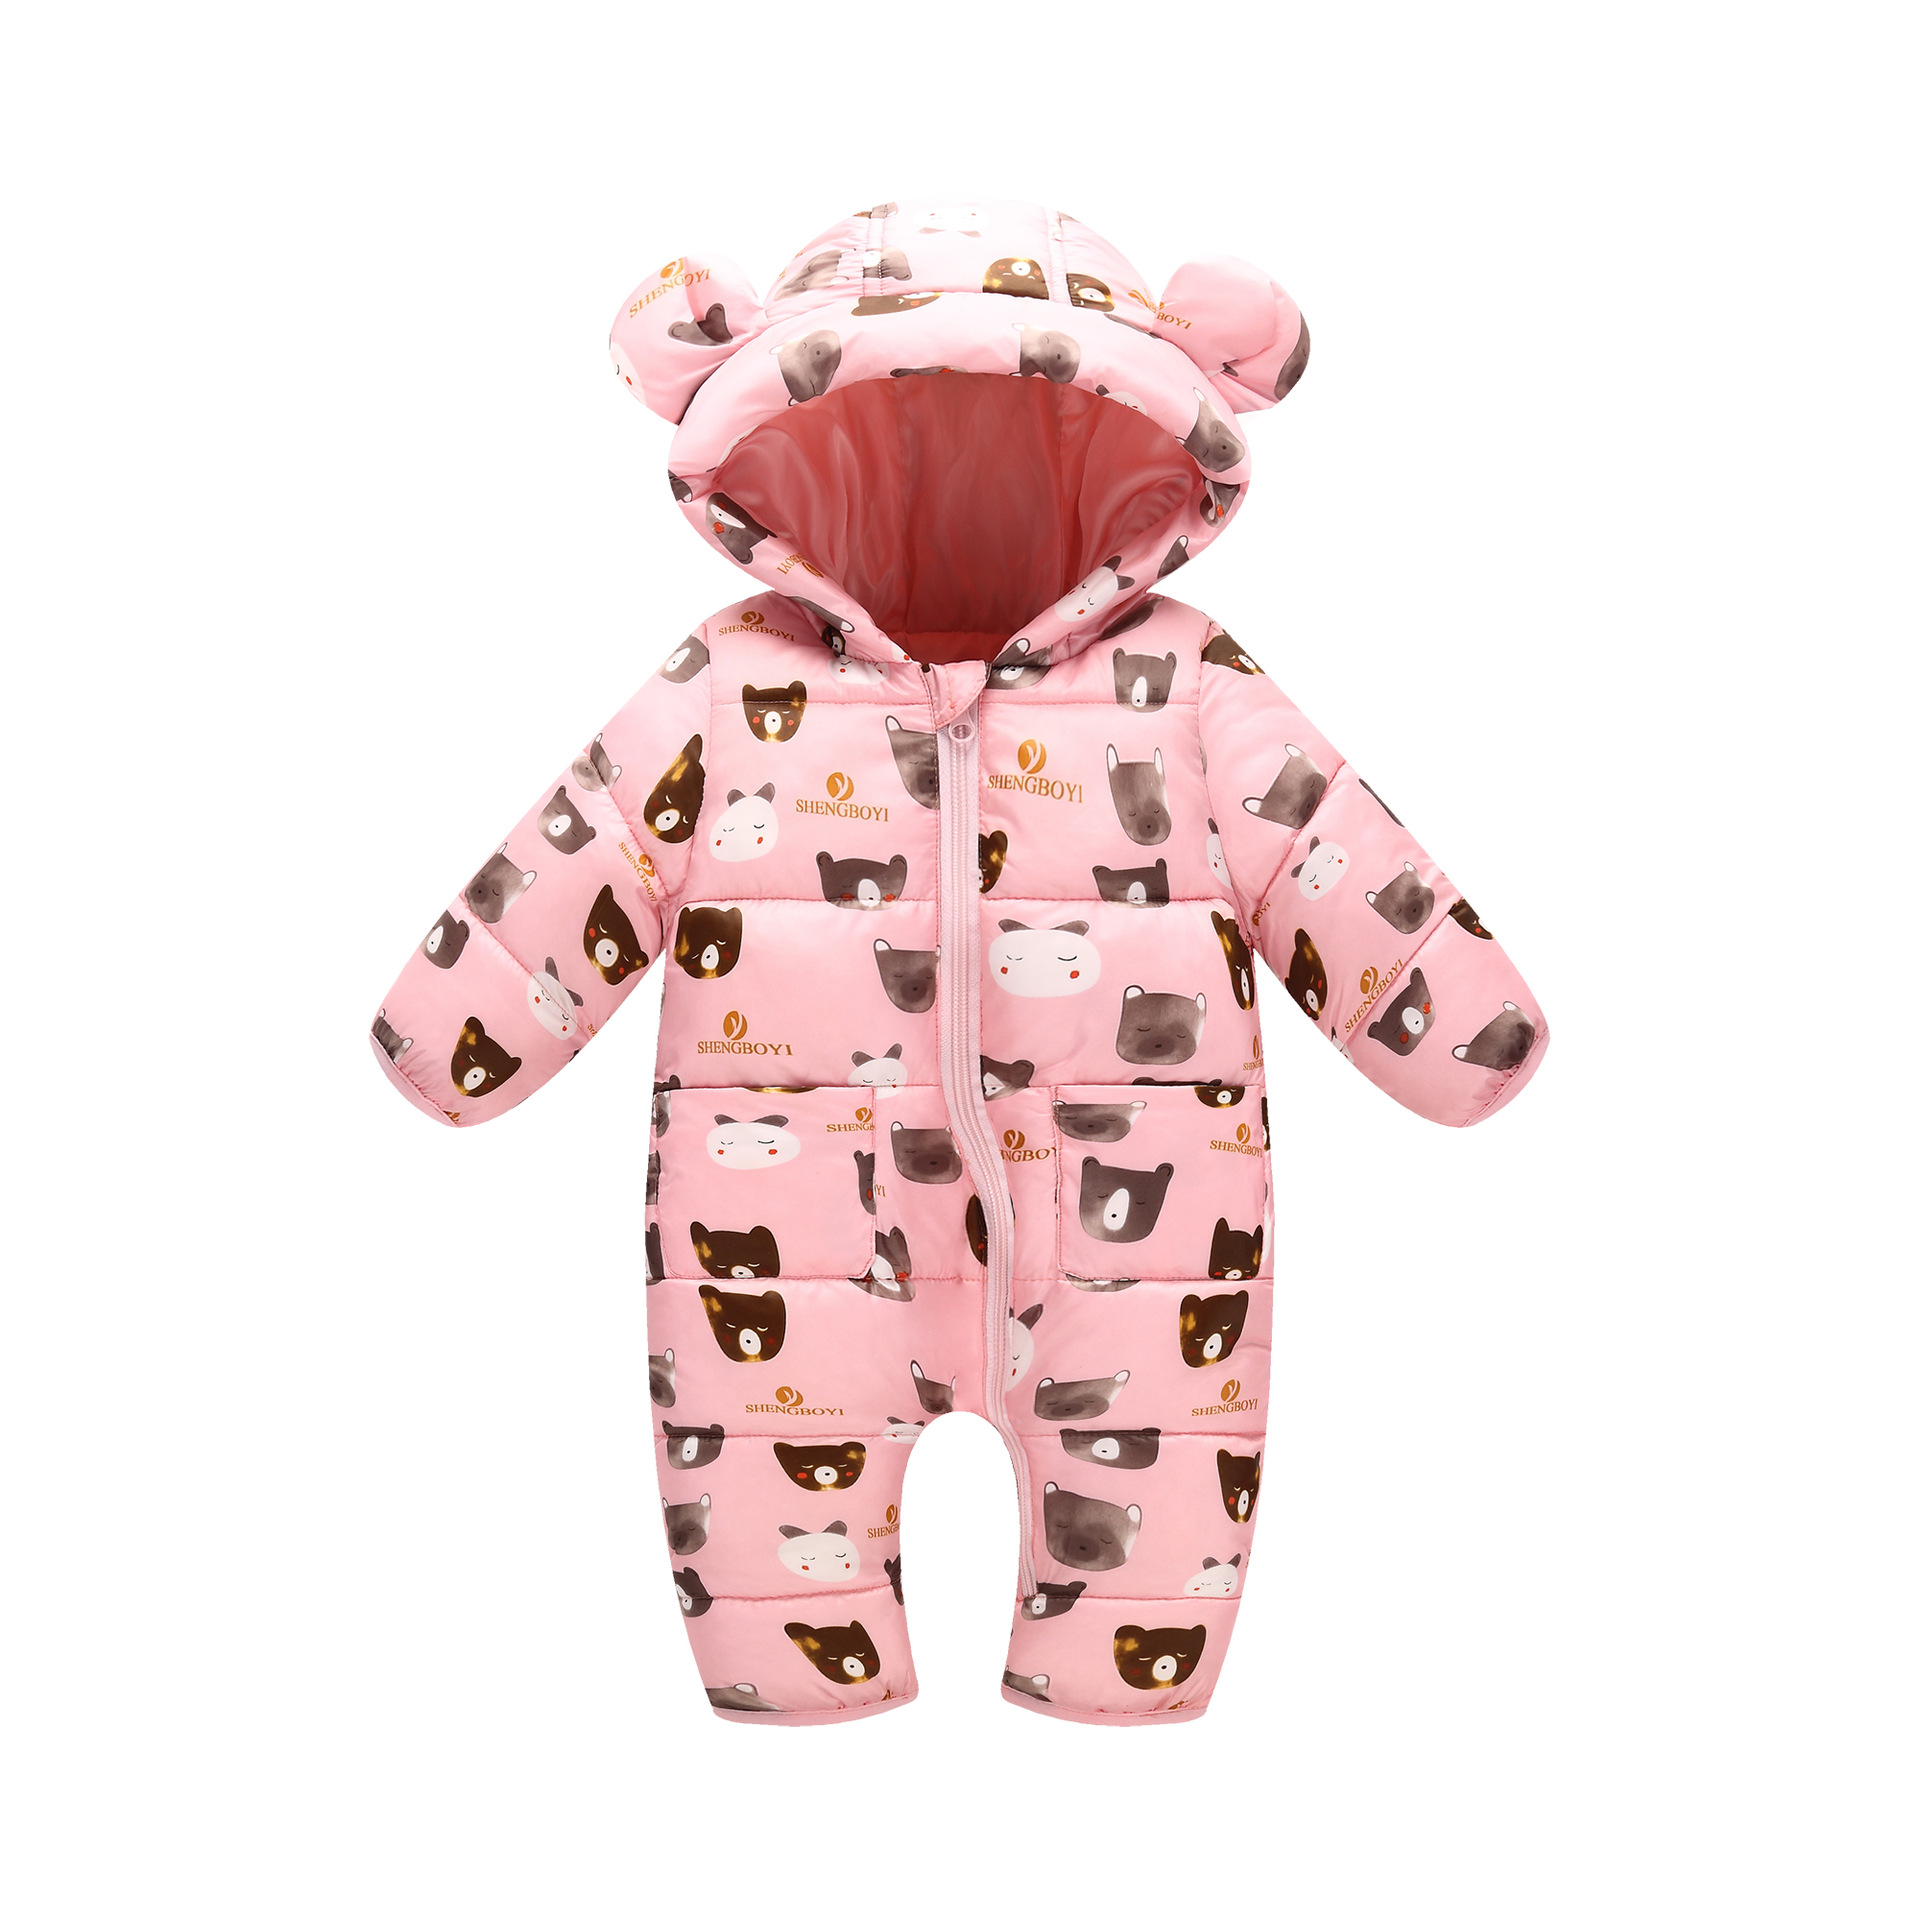 Girls Infants Climb Clothes Baby Romper Jumpsuit Children Climb Clothes Cotton Overalls Boys Long Sleeve Hooded Romper cotton baby rompers set newborn clothes baby clothing boys girls cartoon jumpsuits long sleeve overalls coveralls autumn winter